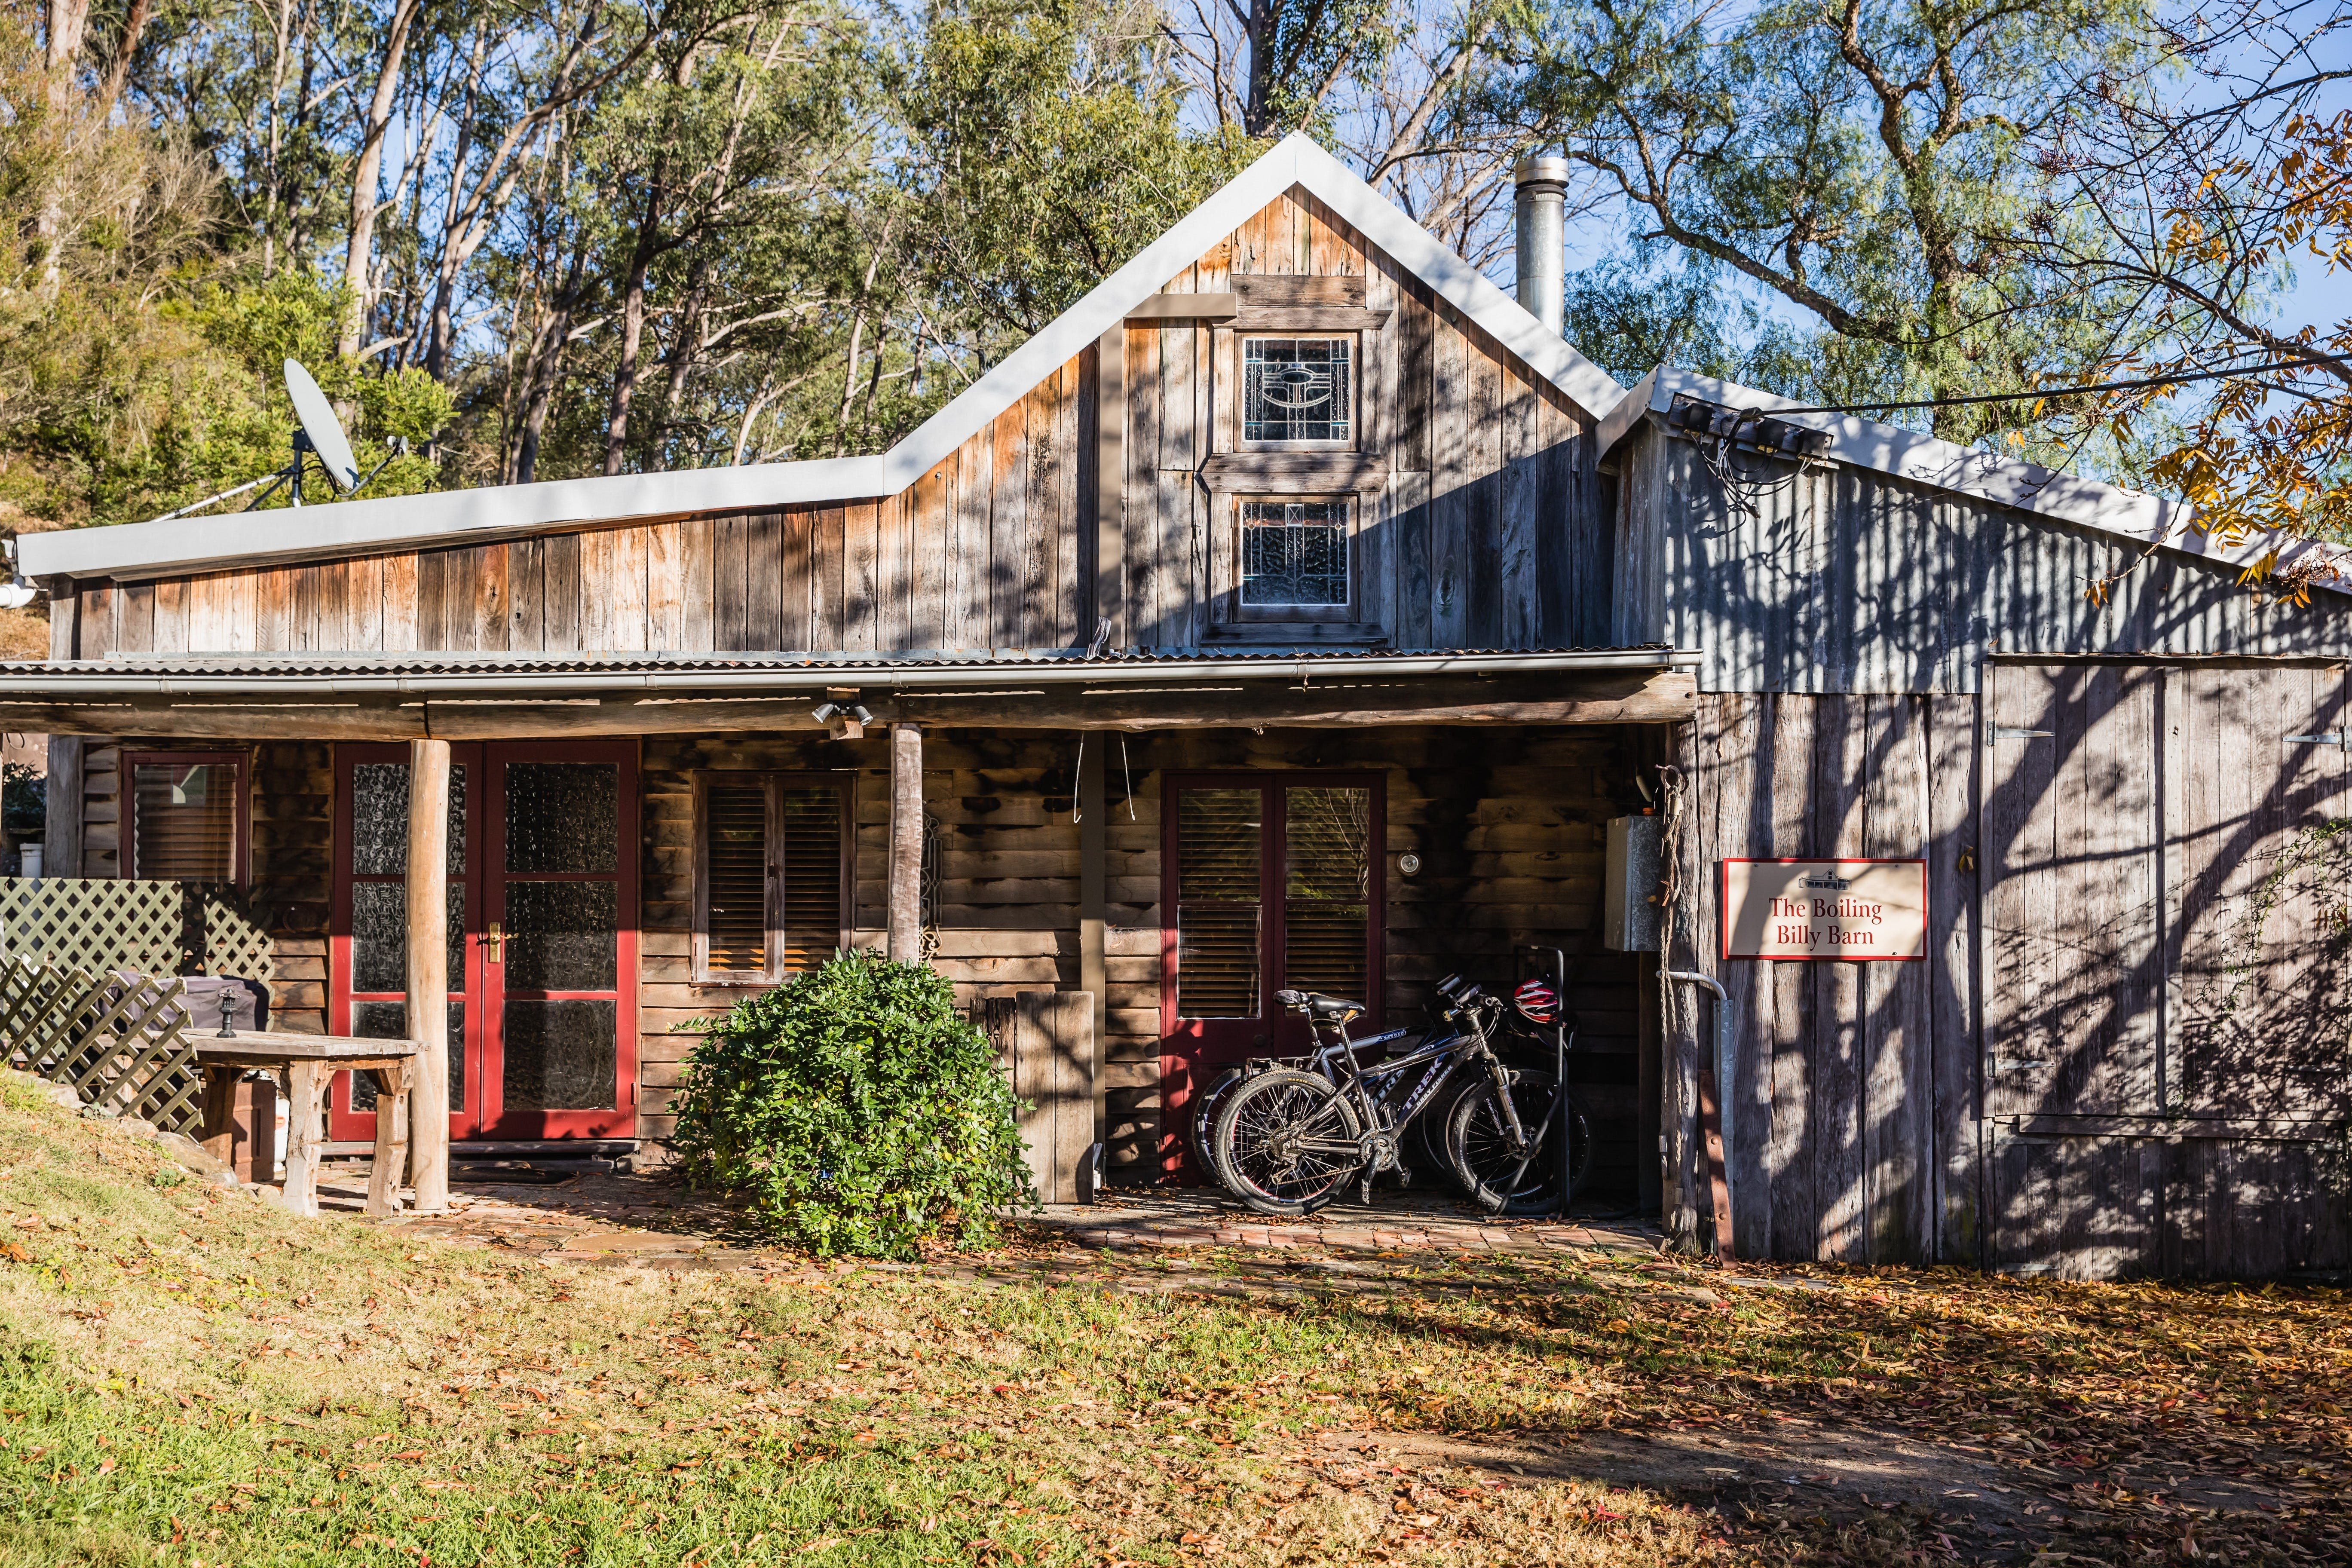 The Boiling Billy Barn - Accommodation in Brisbane